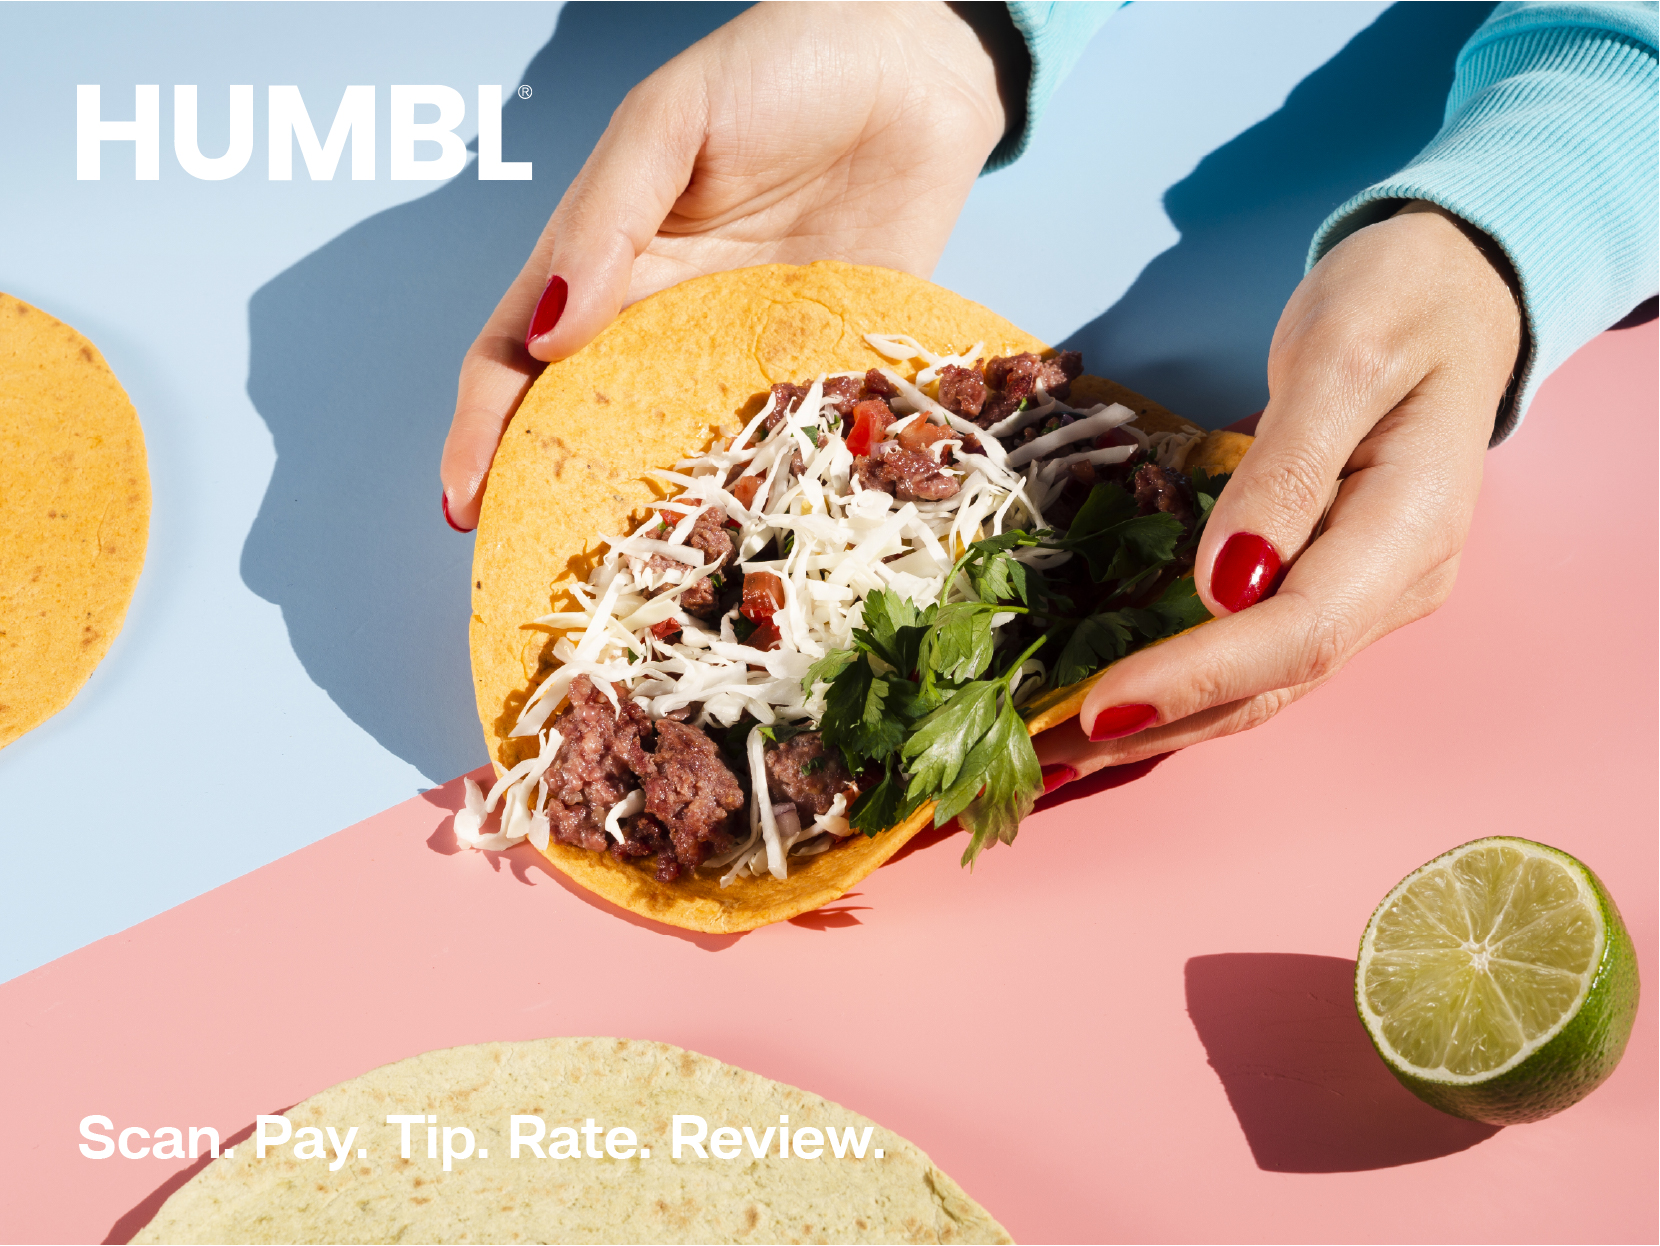 HUMBL® Mobile App and HUMBL Hubs™ Merchant Solutions Deliver Successful Pilot Transactions Between United States and Mexico